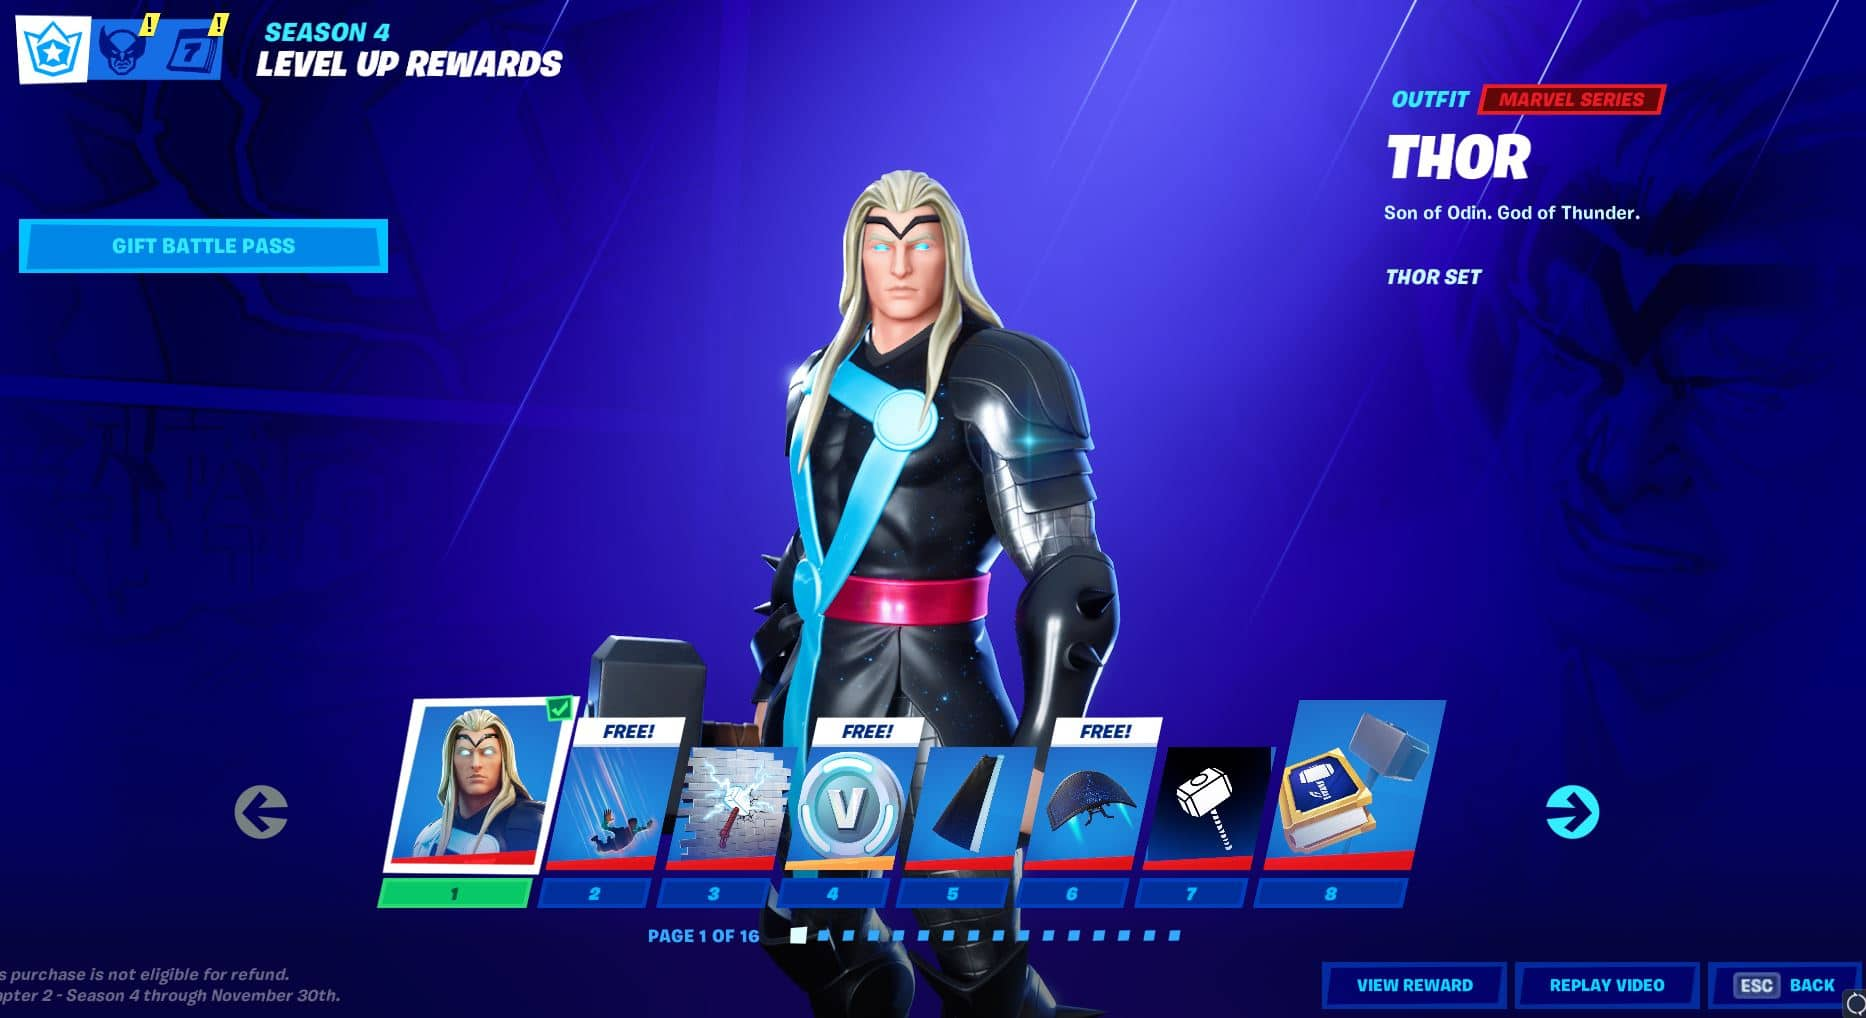 Fortnite Chapter 2, Season 4 Battle Pass Level 1 - 8